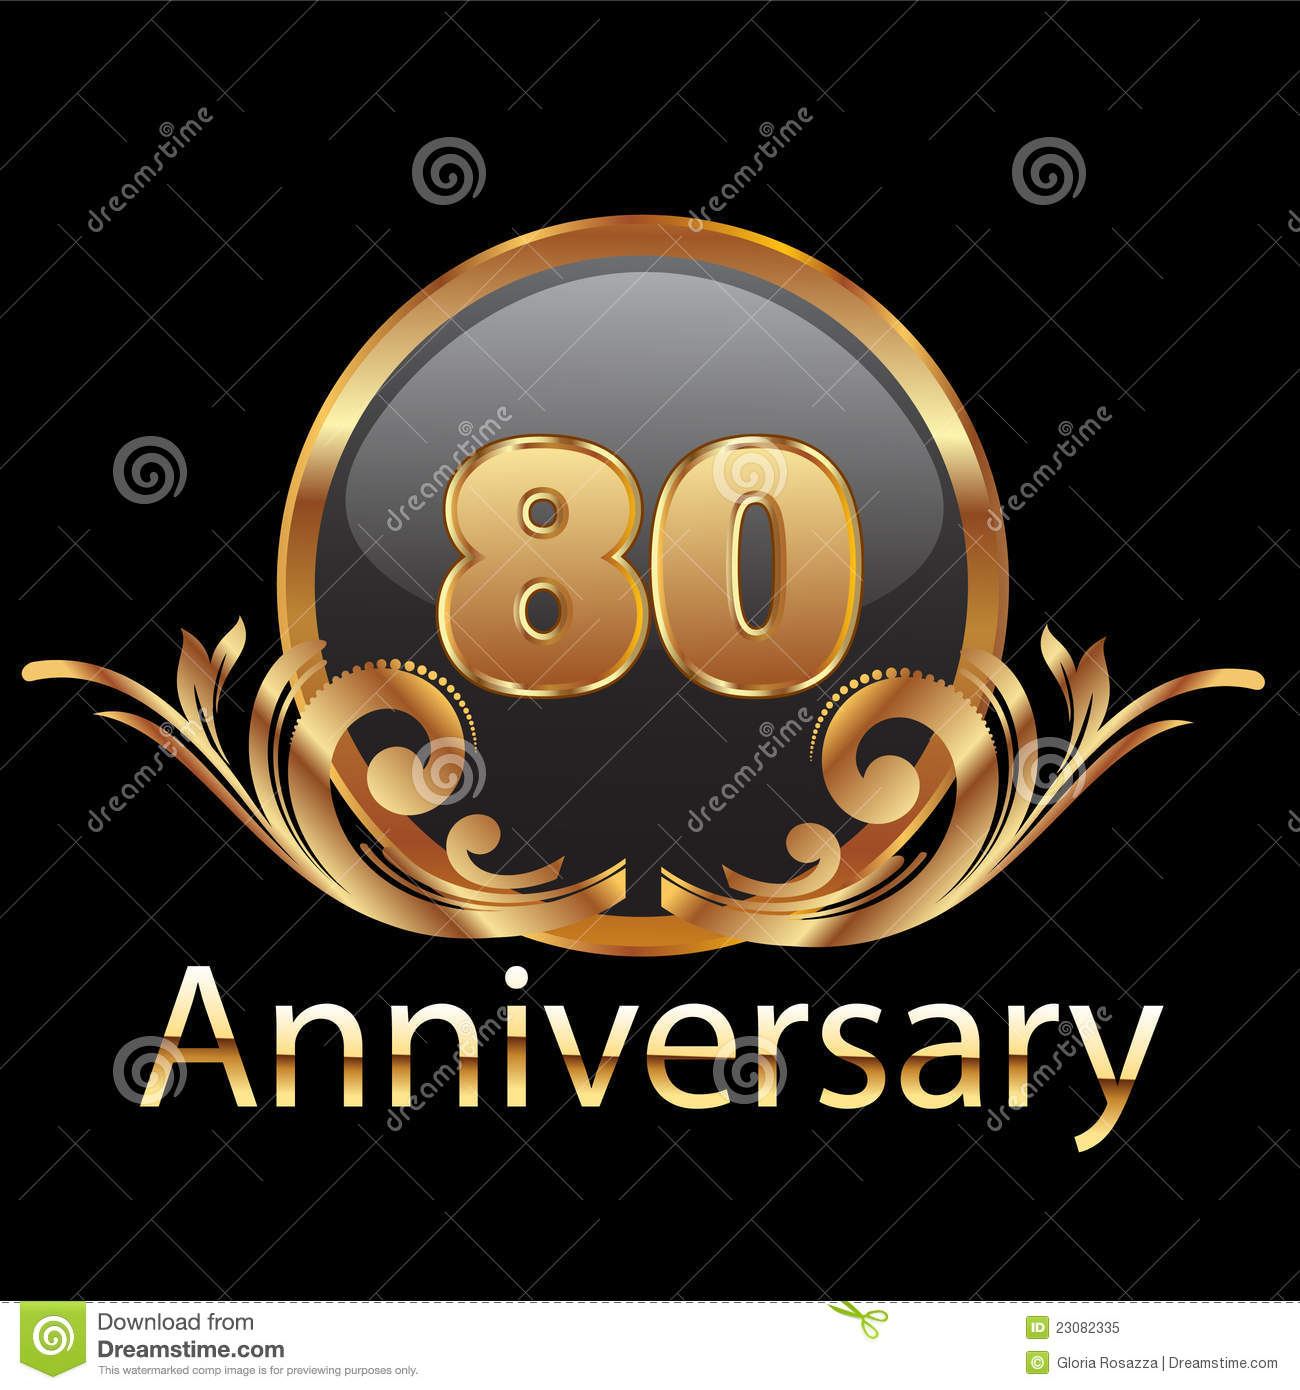 80th Anniversary Gold Royalty Free Stock Photo - Image: 23082335